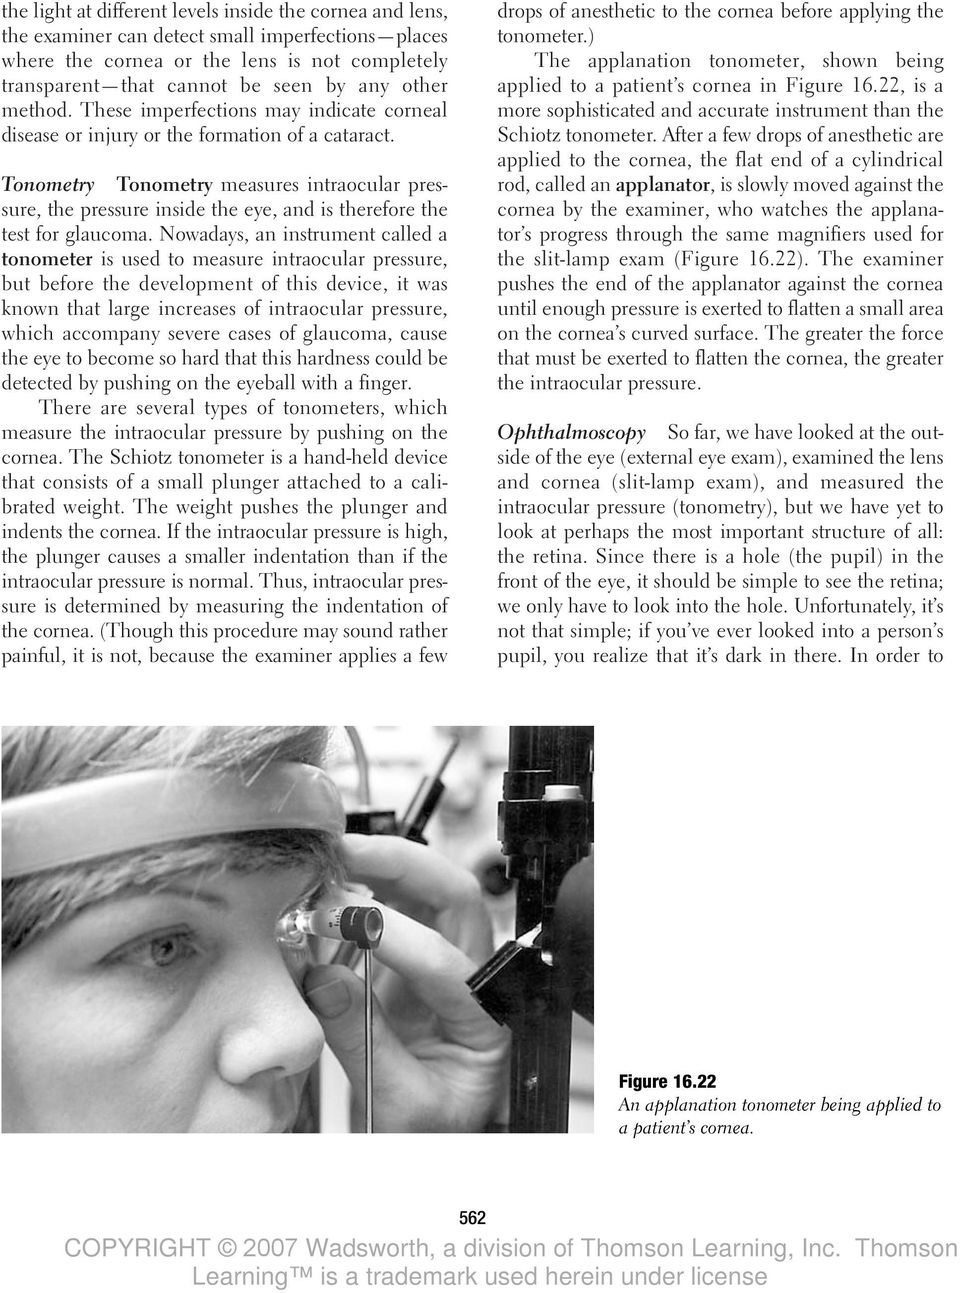 Tonometry Tonometry measures intraocular pressure, the pressure inside the eye, and is therefore the test for glaucoma.